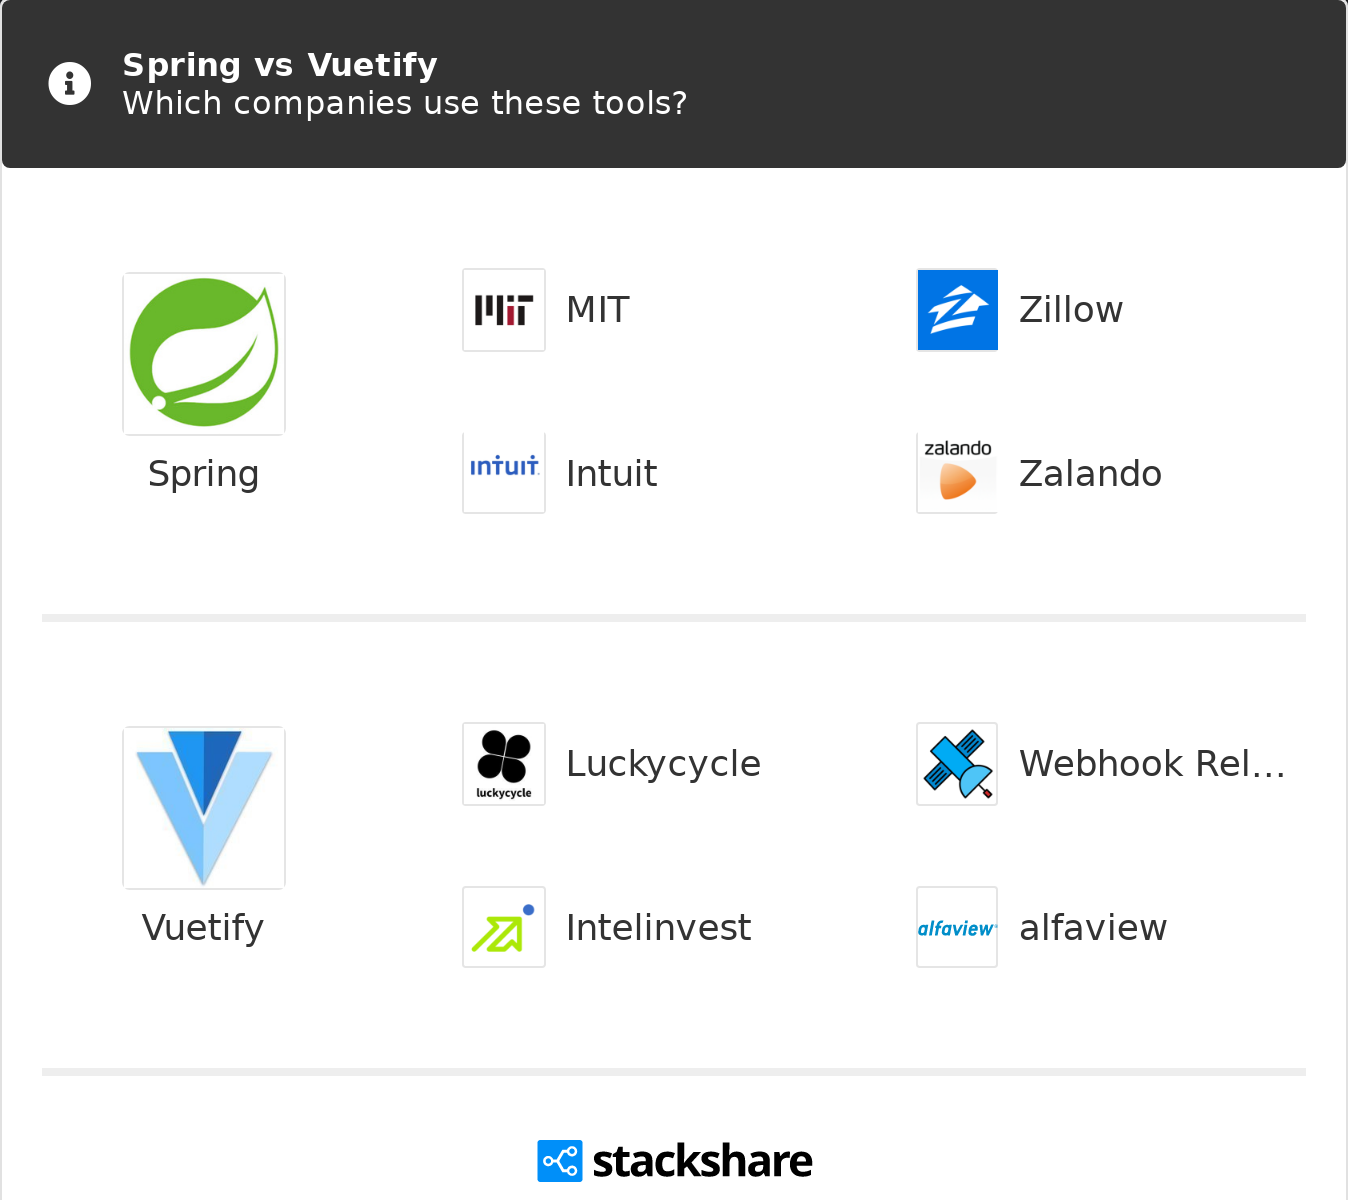 Spring vs Vuetify | What are the differences?